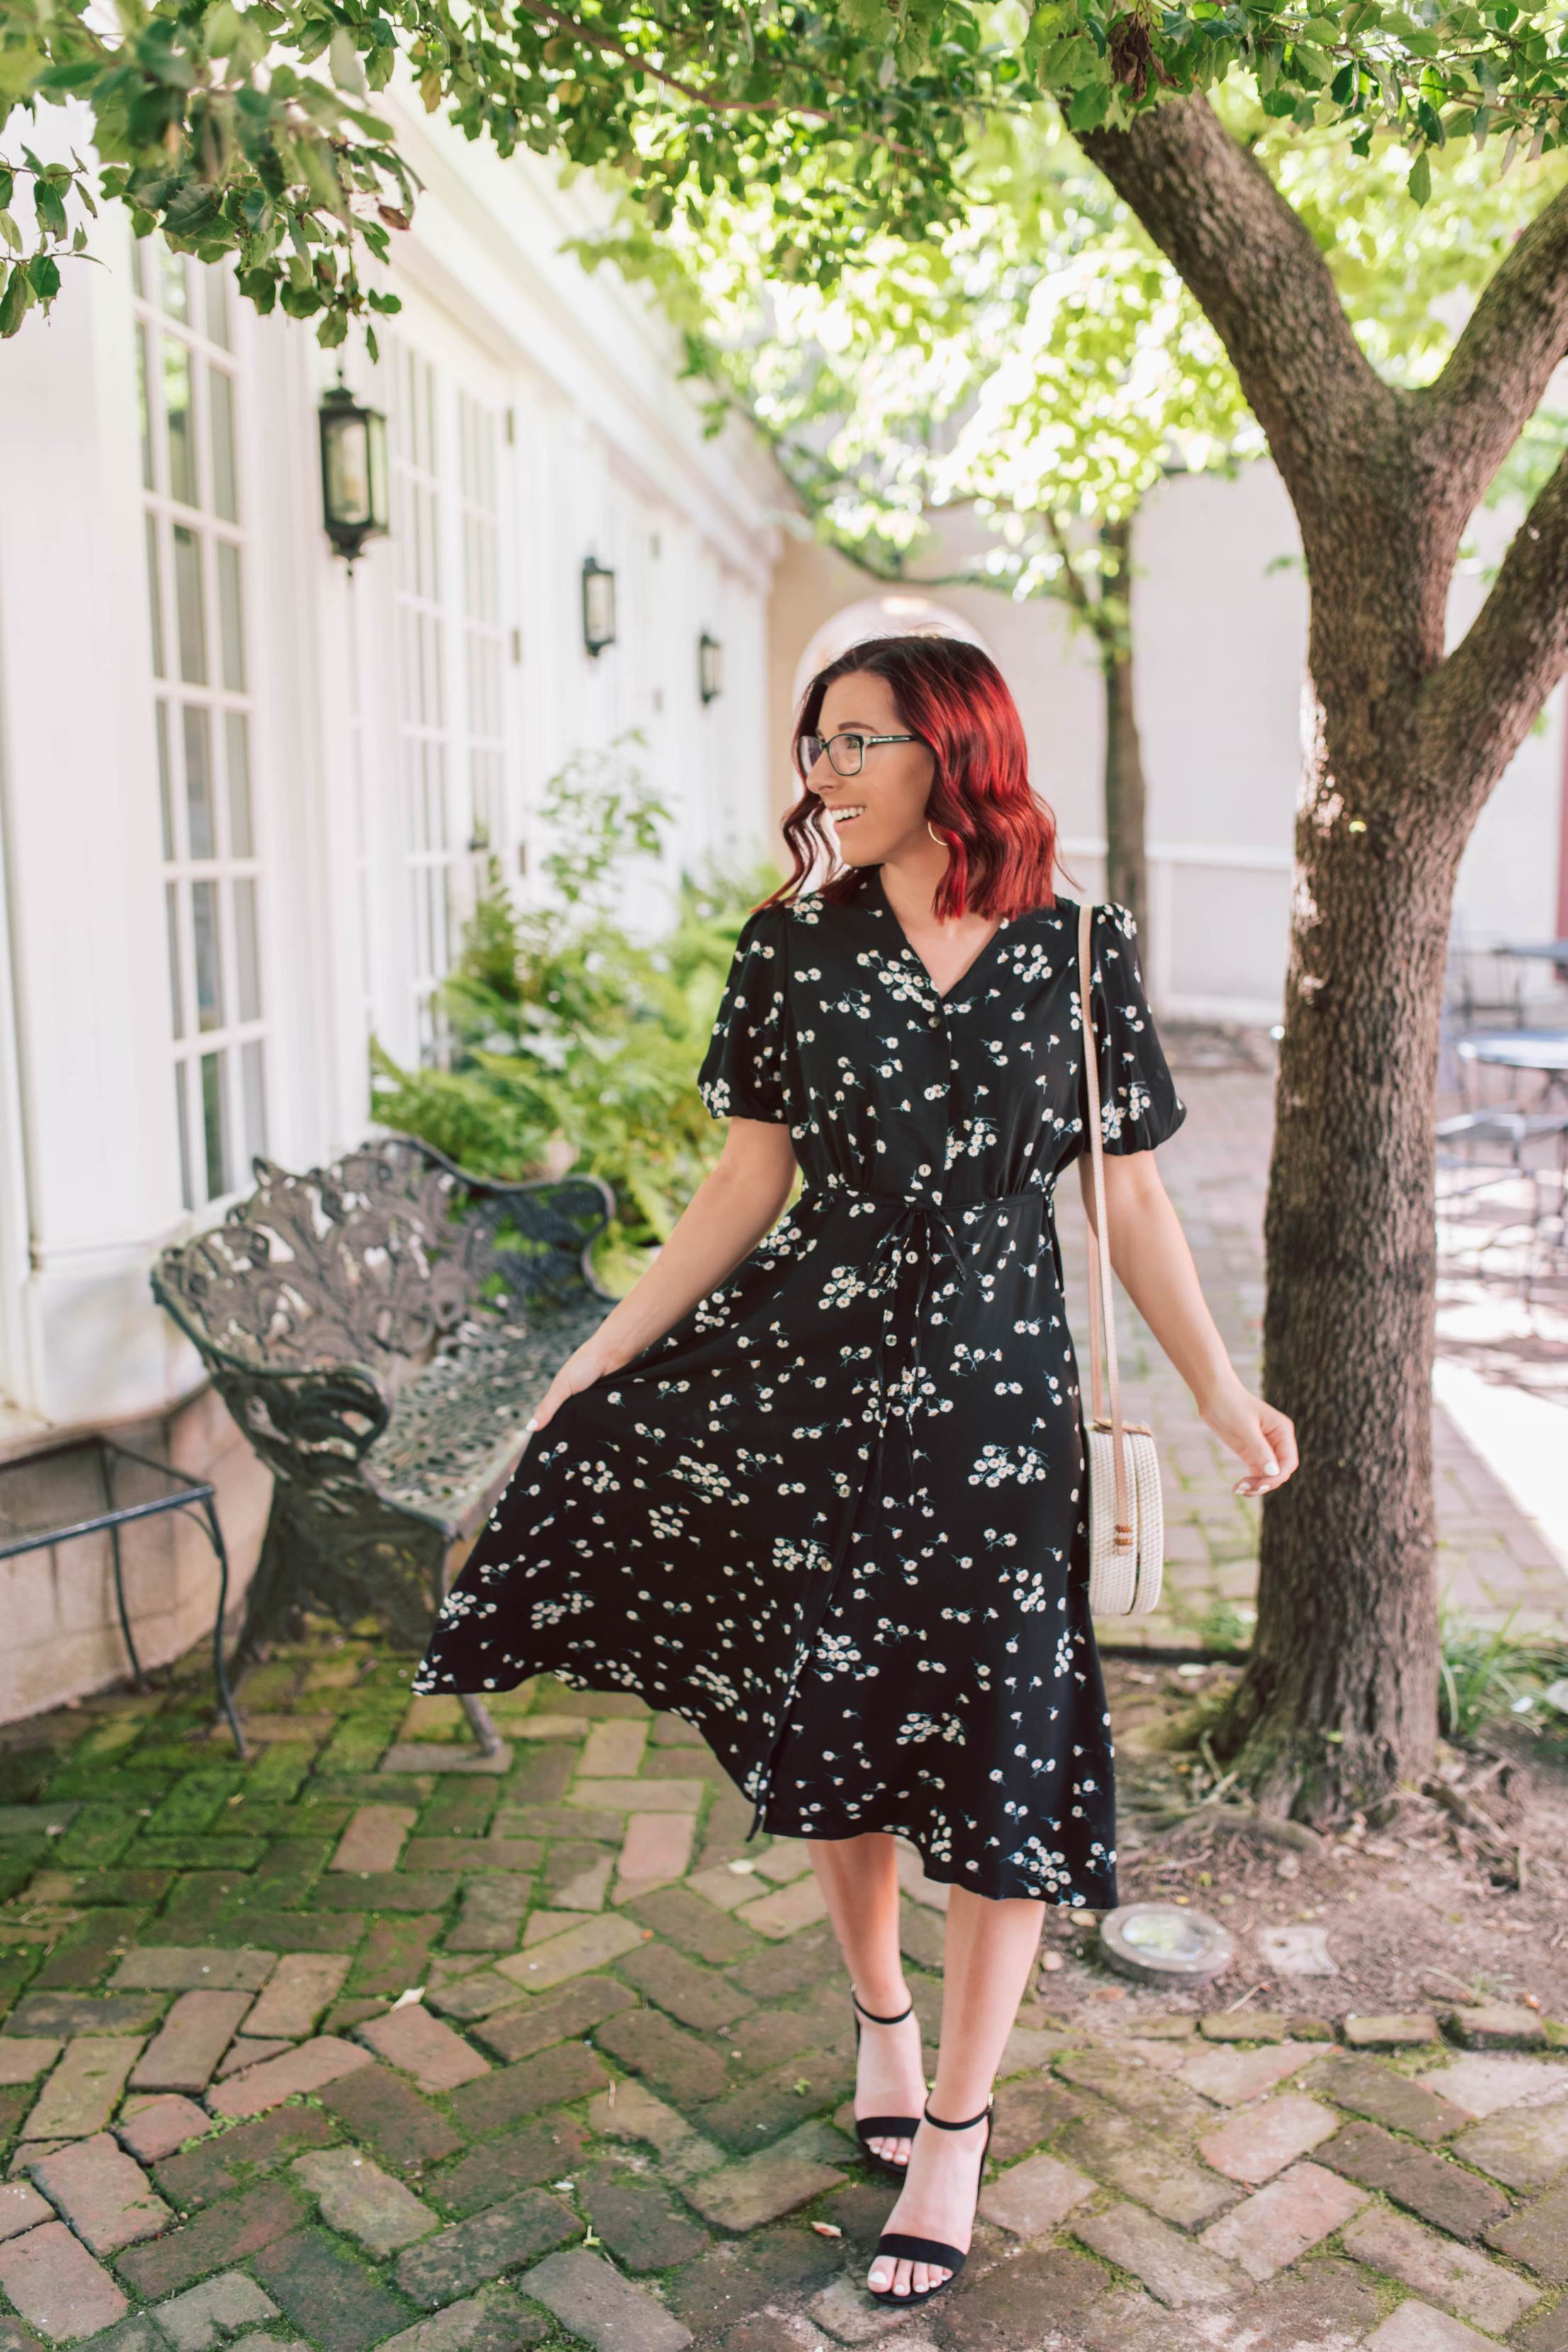 A Twist On The Typical Little Black Dress